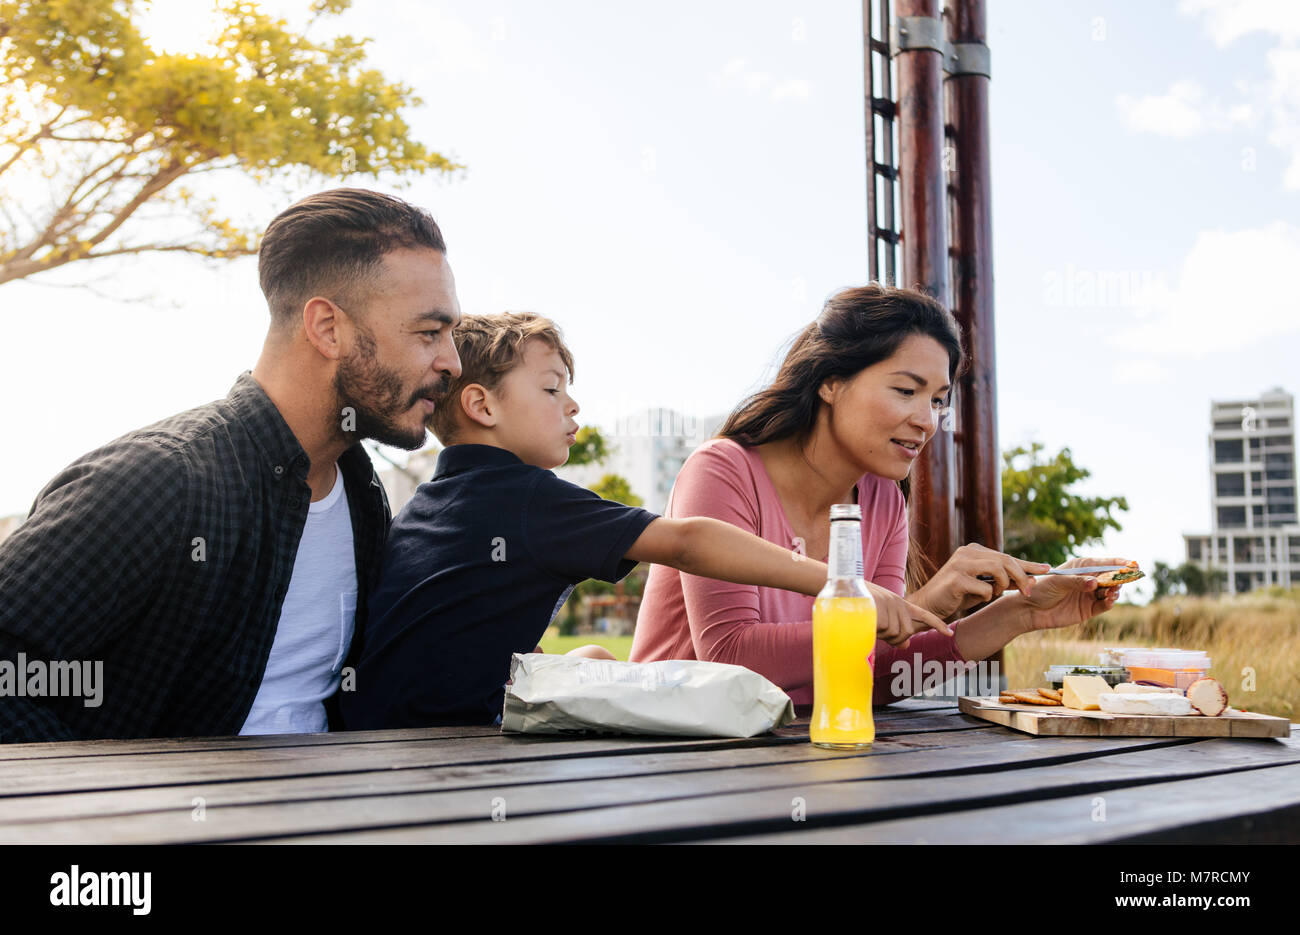 Couple with their child on a day out. Woman preparing snacks outdoors for her family. - Stock Image